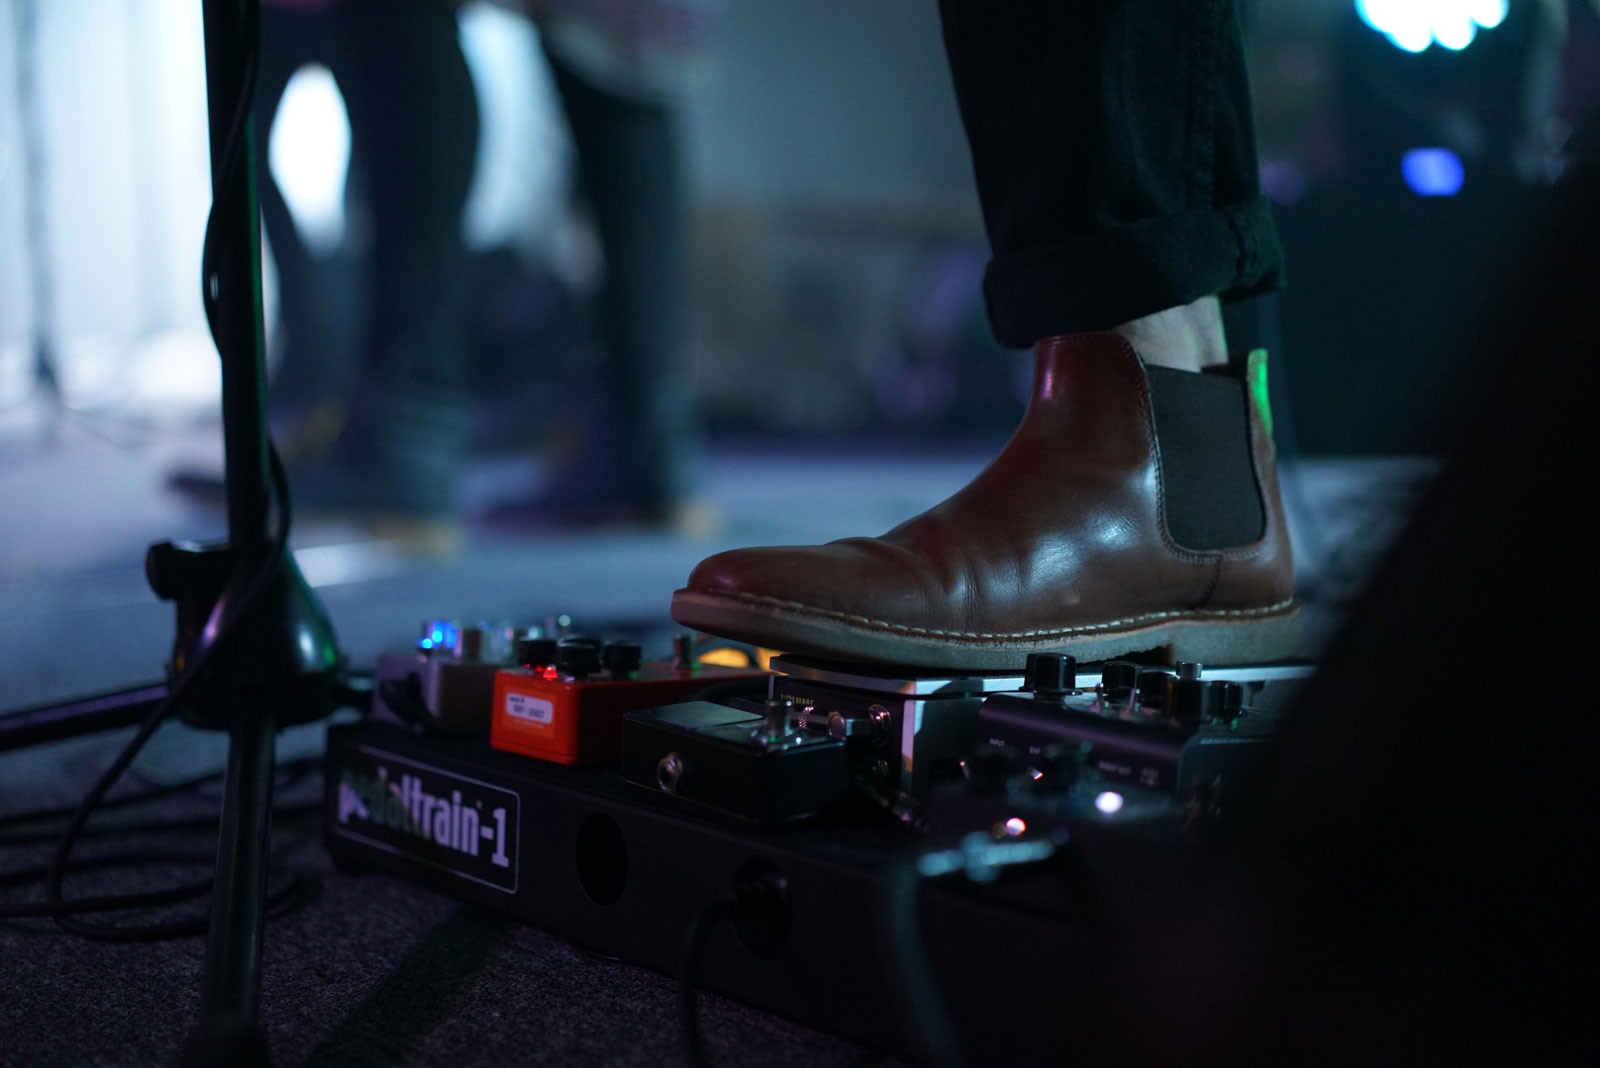 Guitar Effects | Buy These Top 10 Guitar Accessories To Play Like A Boss